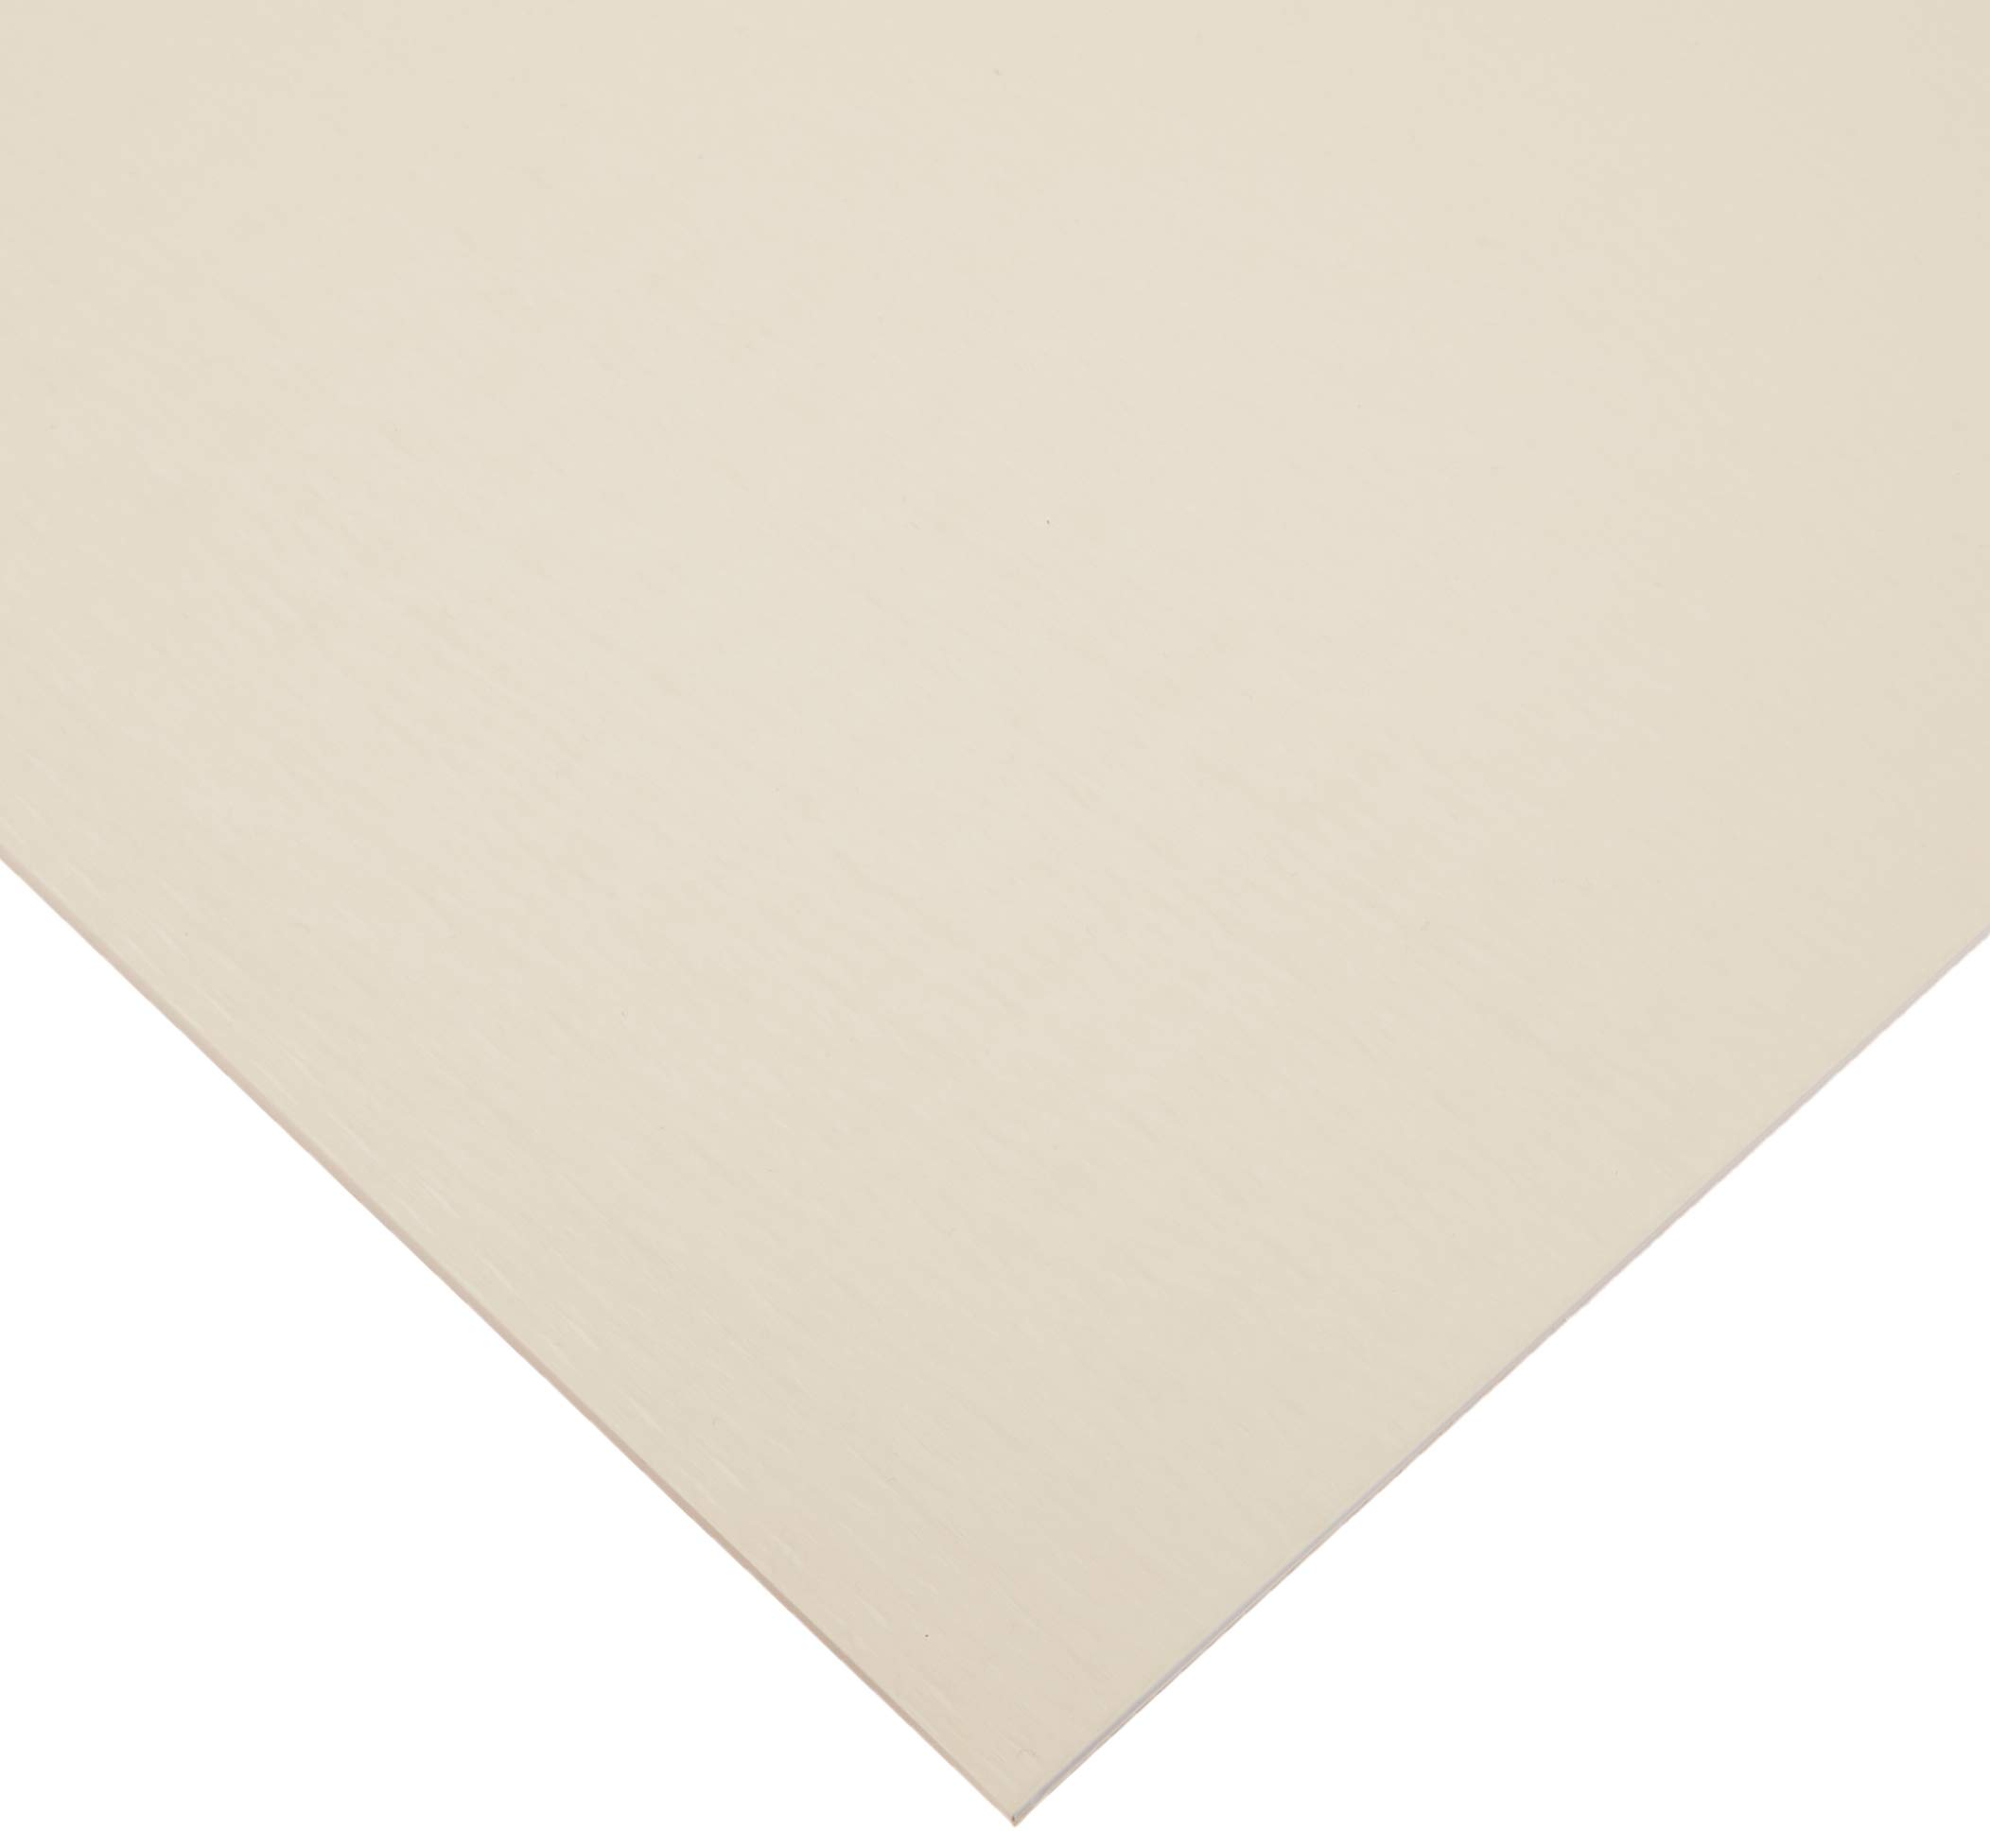 Rolyan Splinting Material Sheet, Polyflex II, Beige, 1/8'' x 18'' x 24'', Solid, Single Sheet